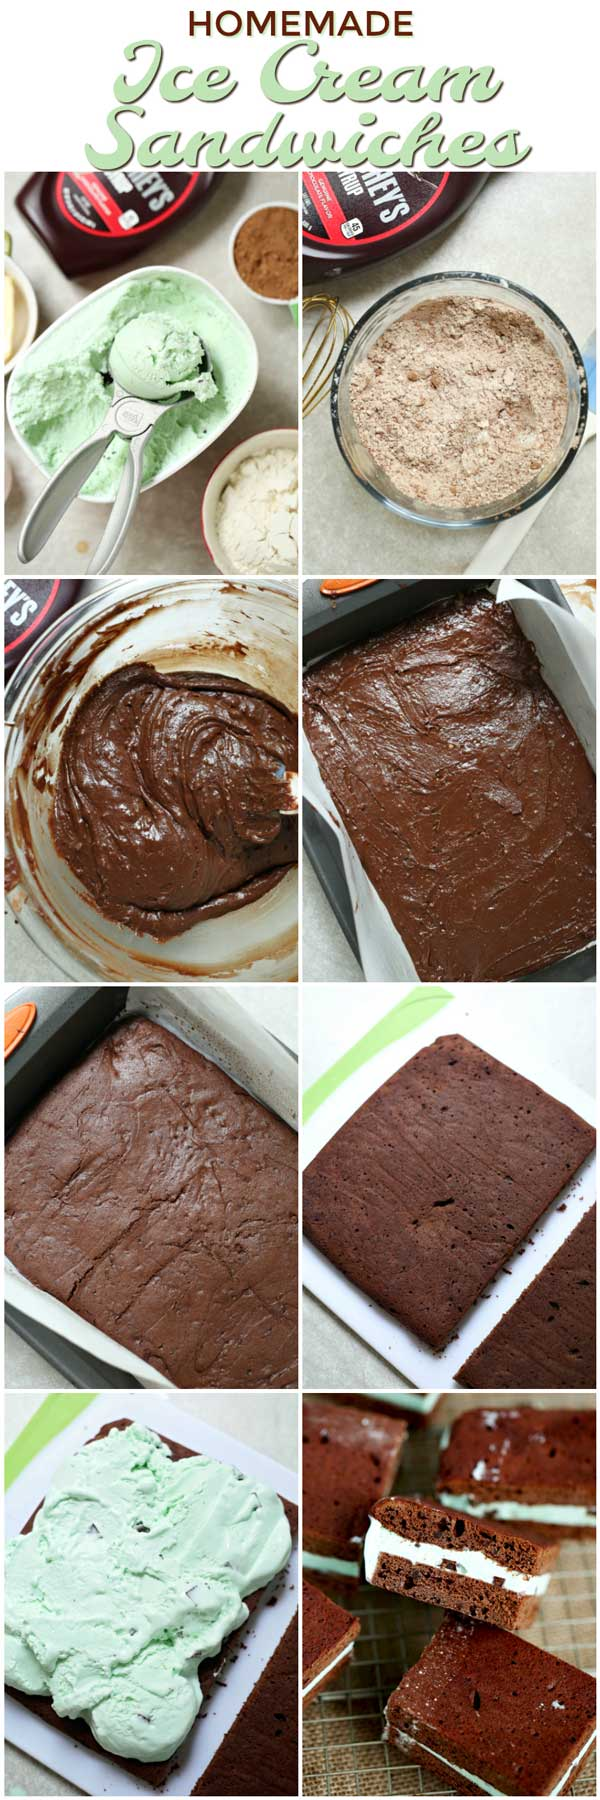 Picture collage of the steps to make ice cream sandwiches.